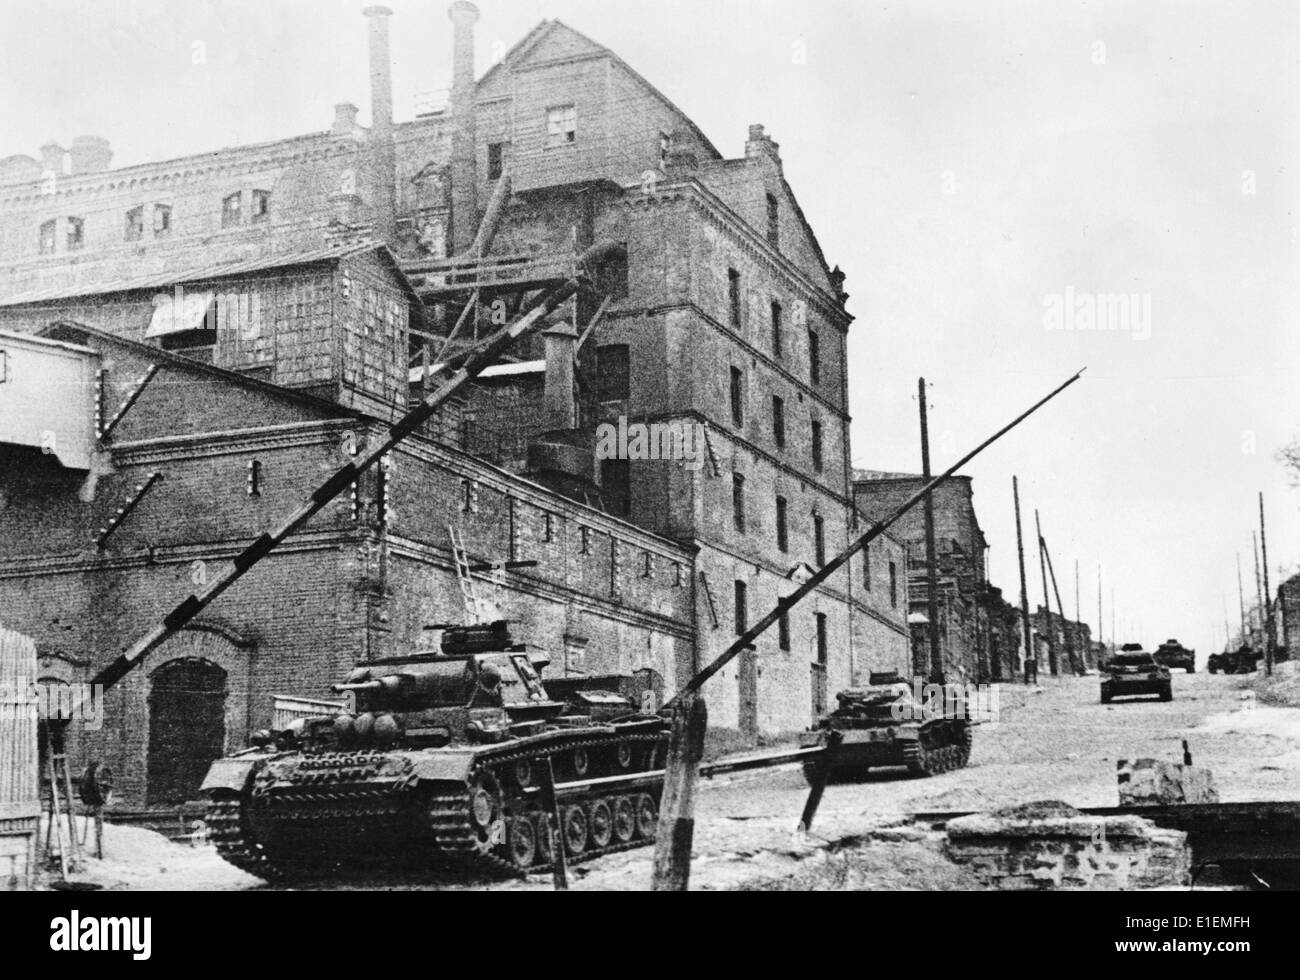 German tanks roll into Rostov, USSR, 1941. In November 1941, the city was occupied by Germans for the first time. Stock Photo